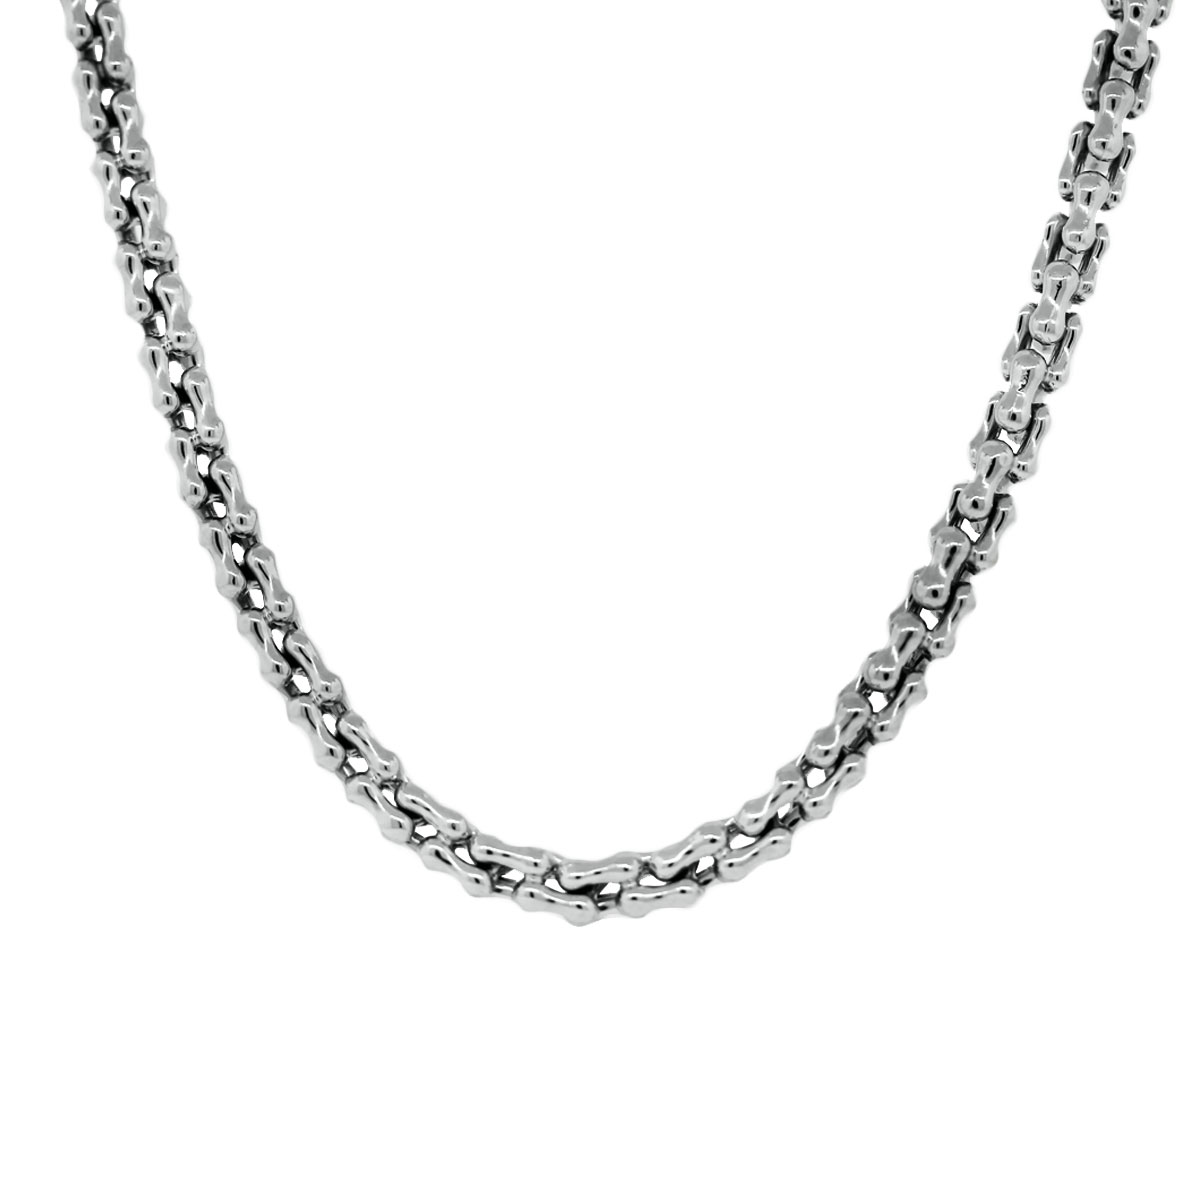 White gold Chain Necklace